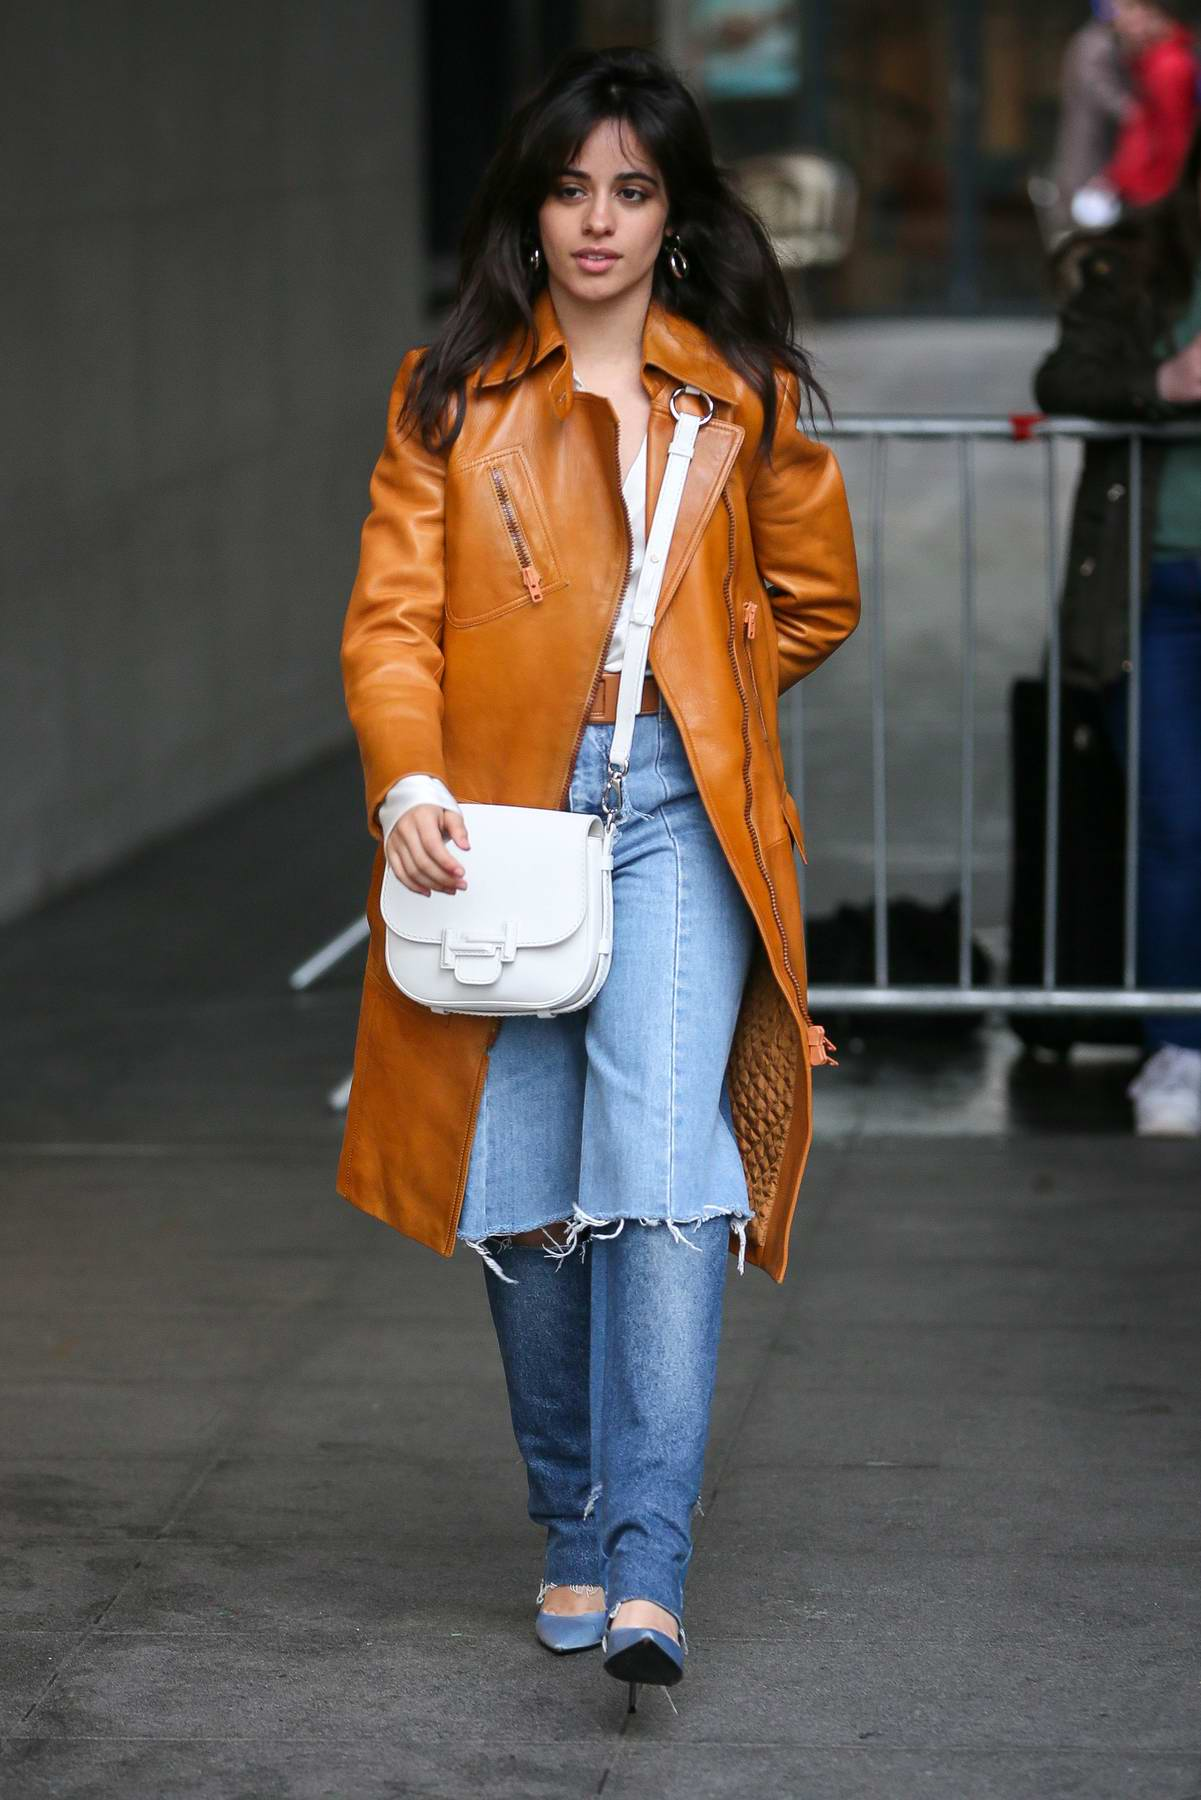 Camila Cabello spotted in an orange leather jacket as she leaves BBC Radio One in London